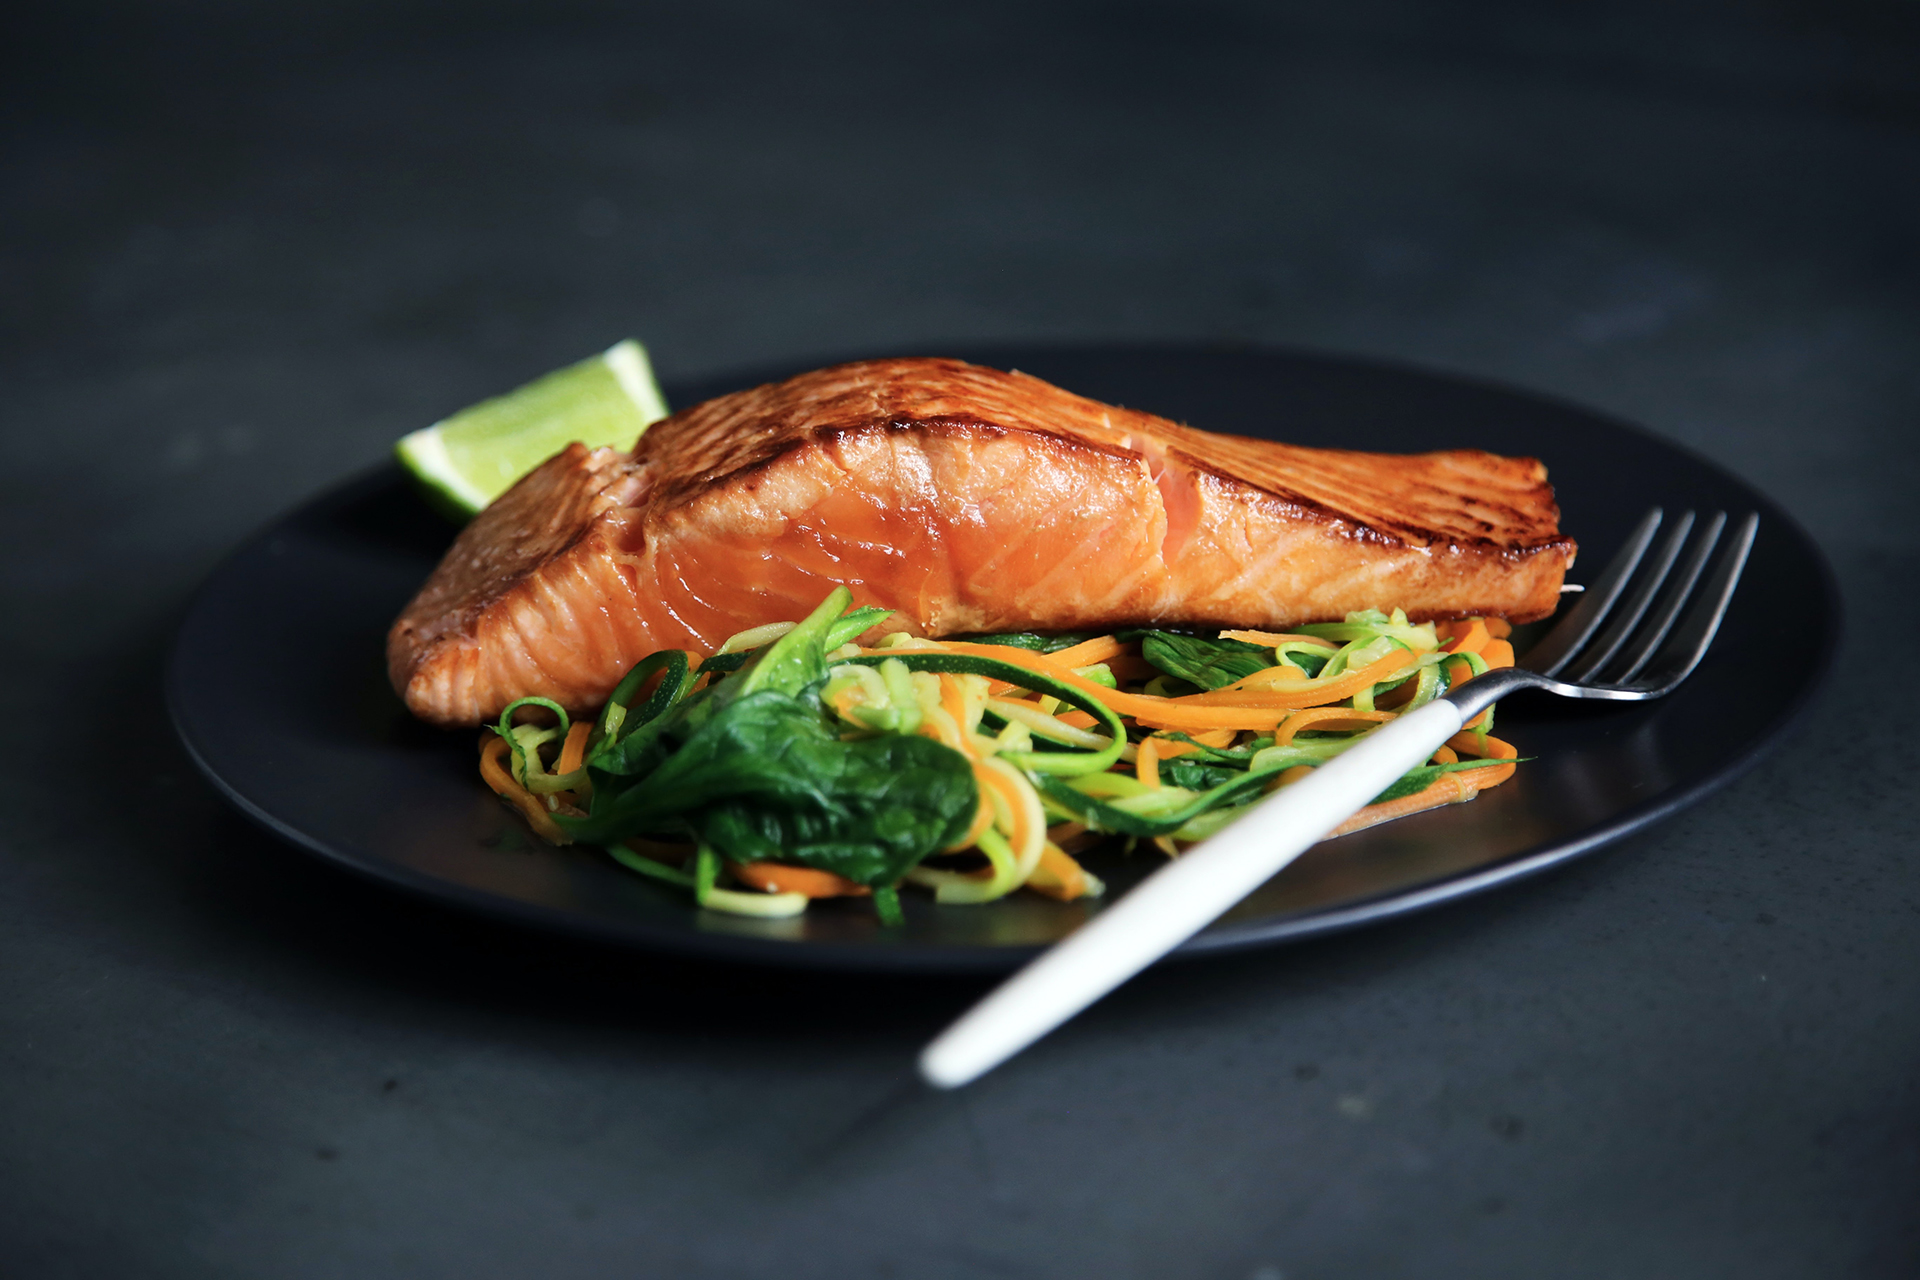 Salmon and boiled vegetables